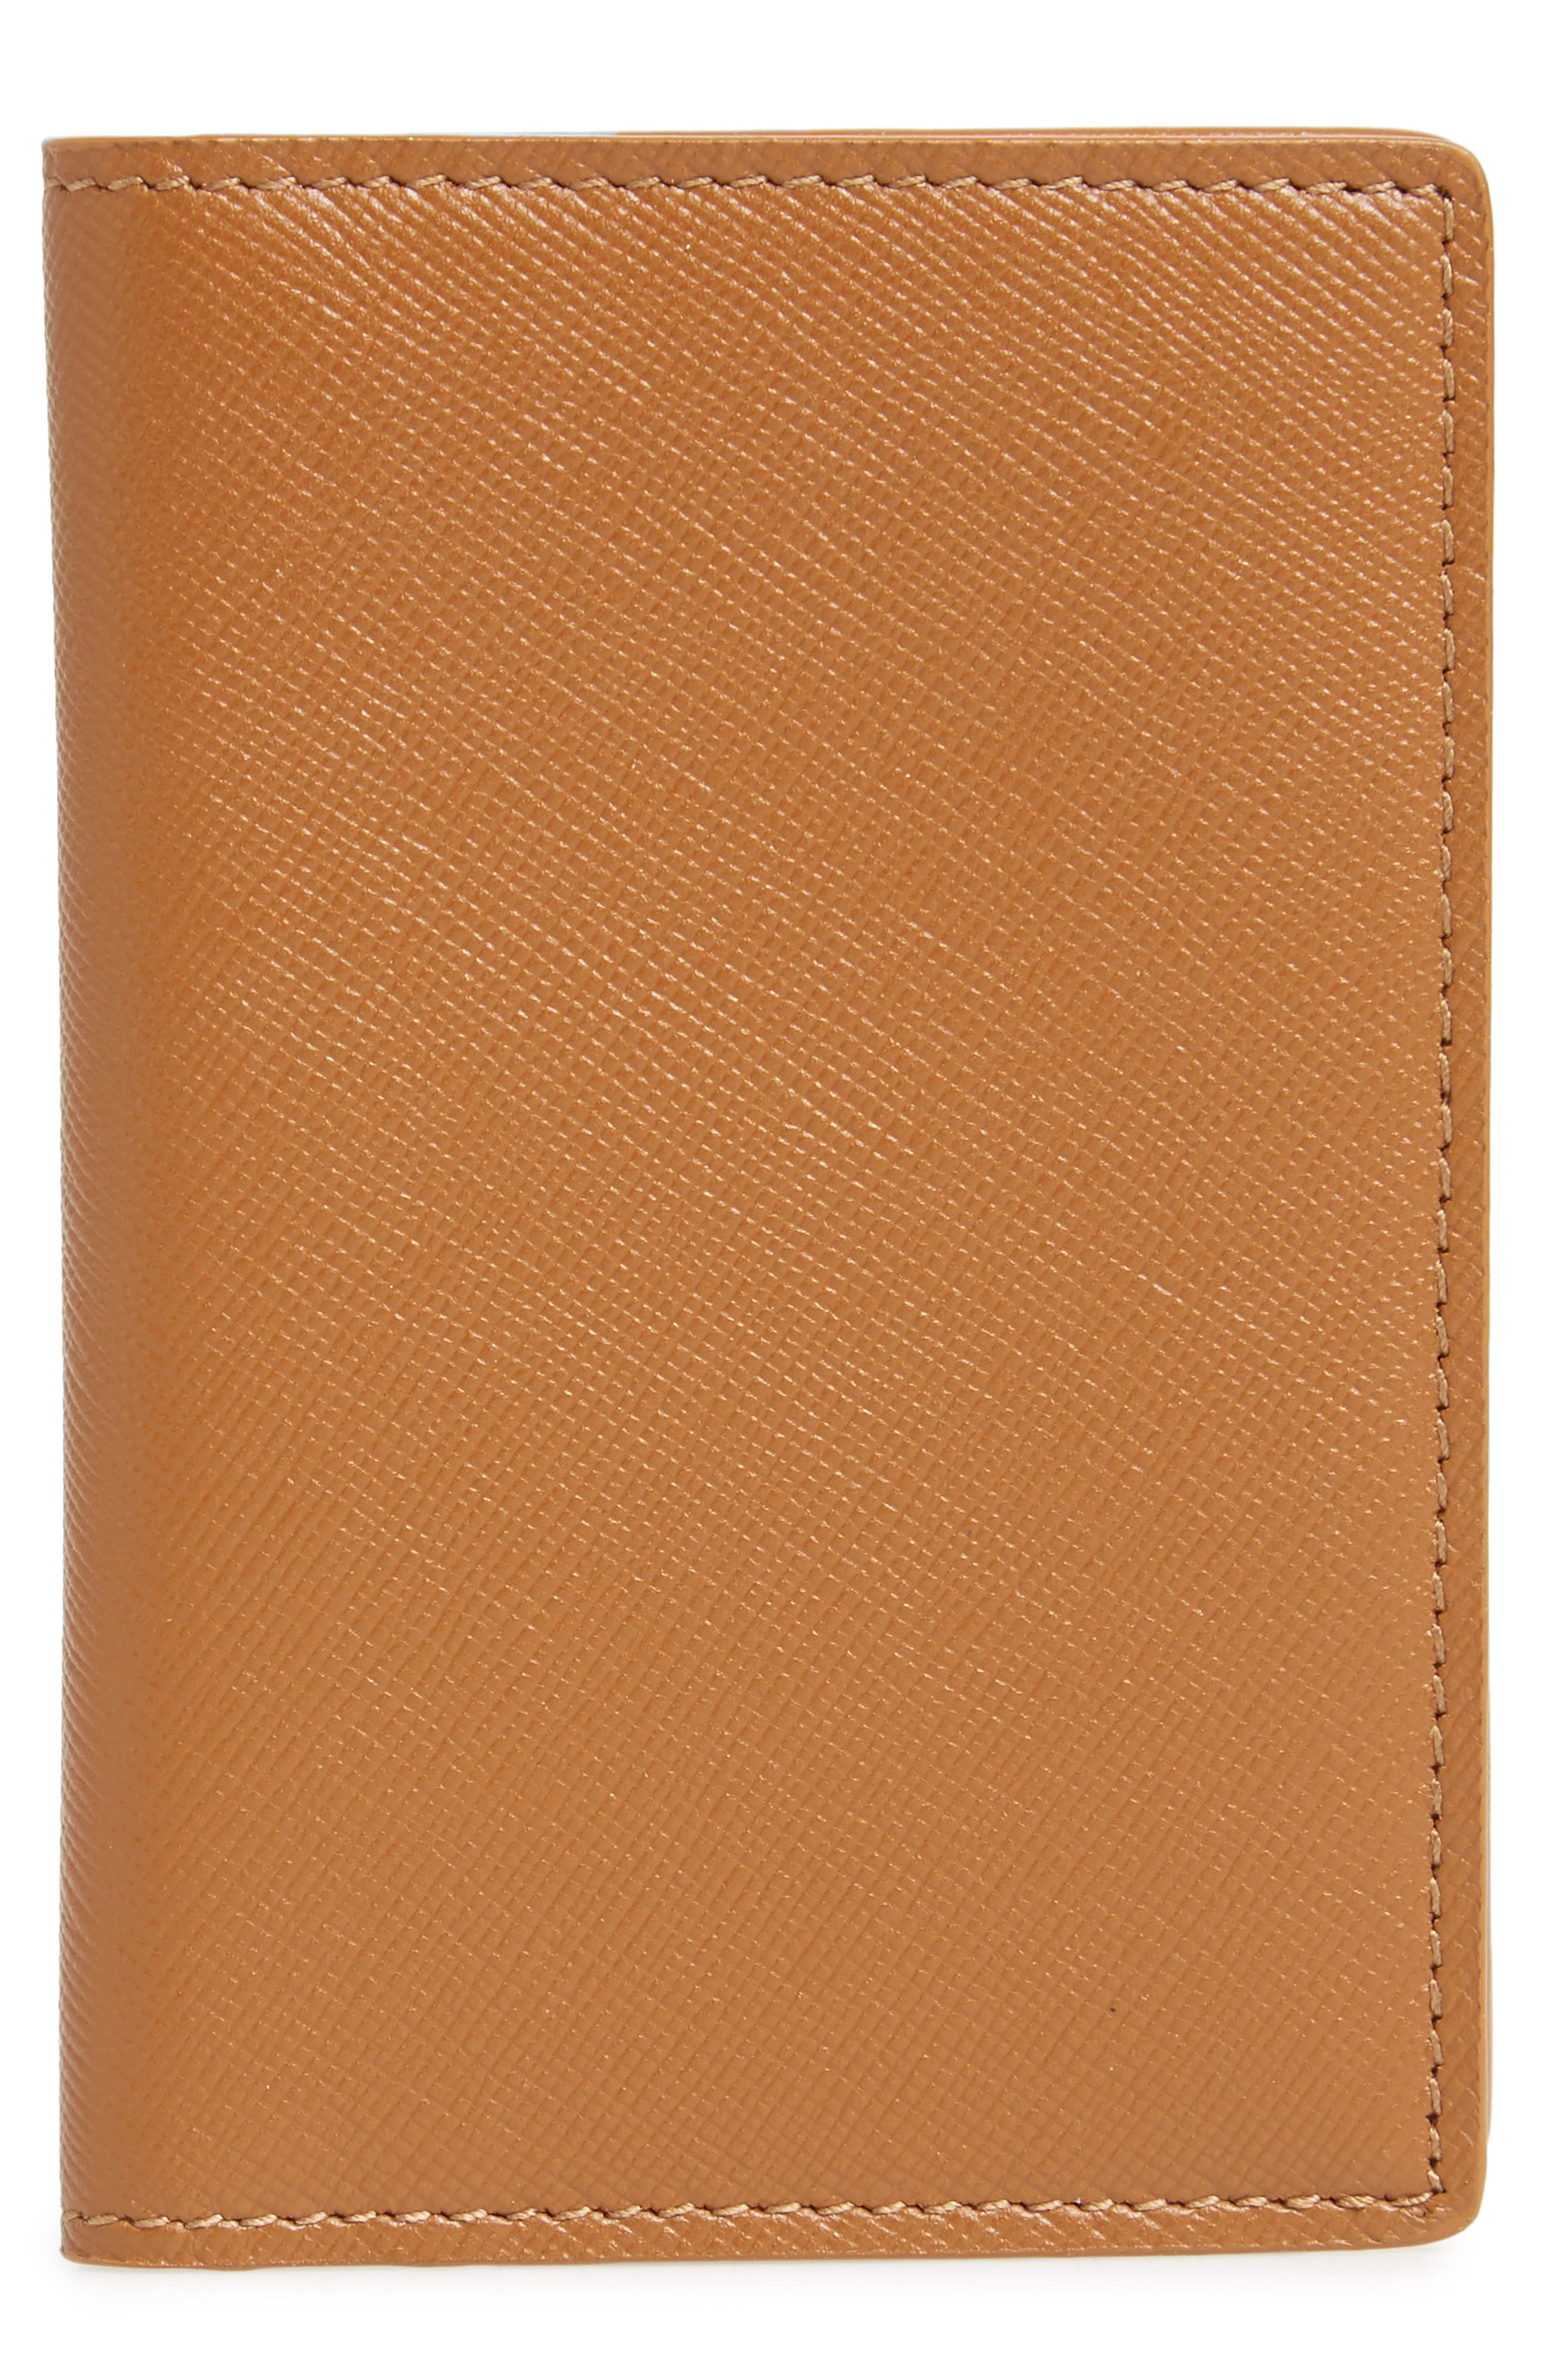 Main Image - Common Projects Saffiano Leather Folio Wallet